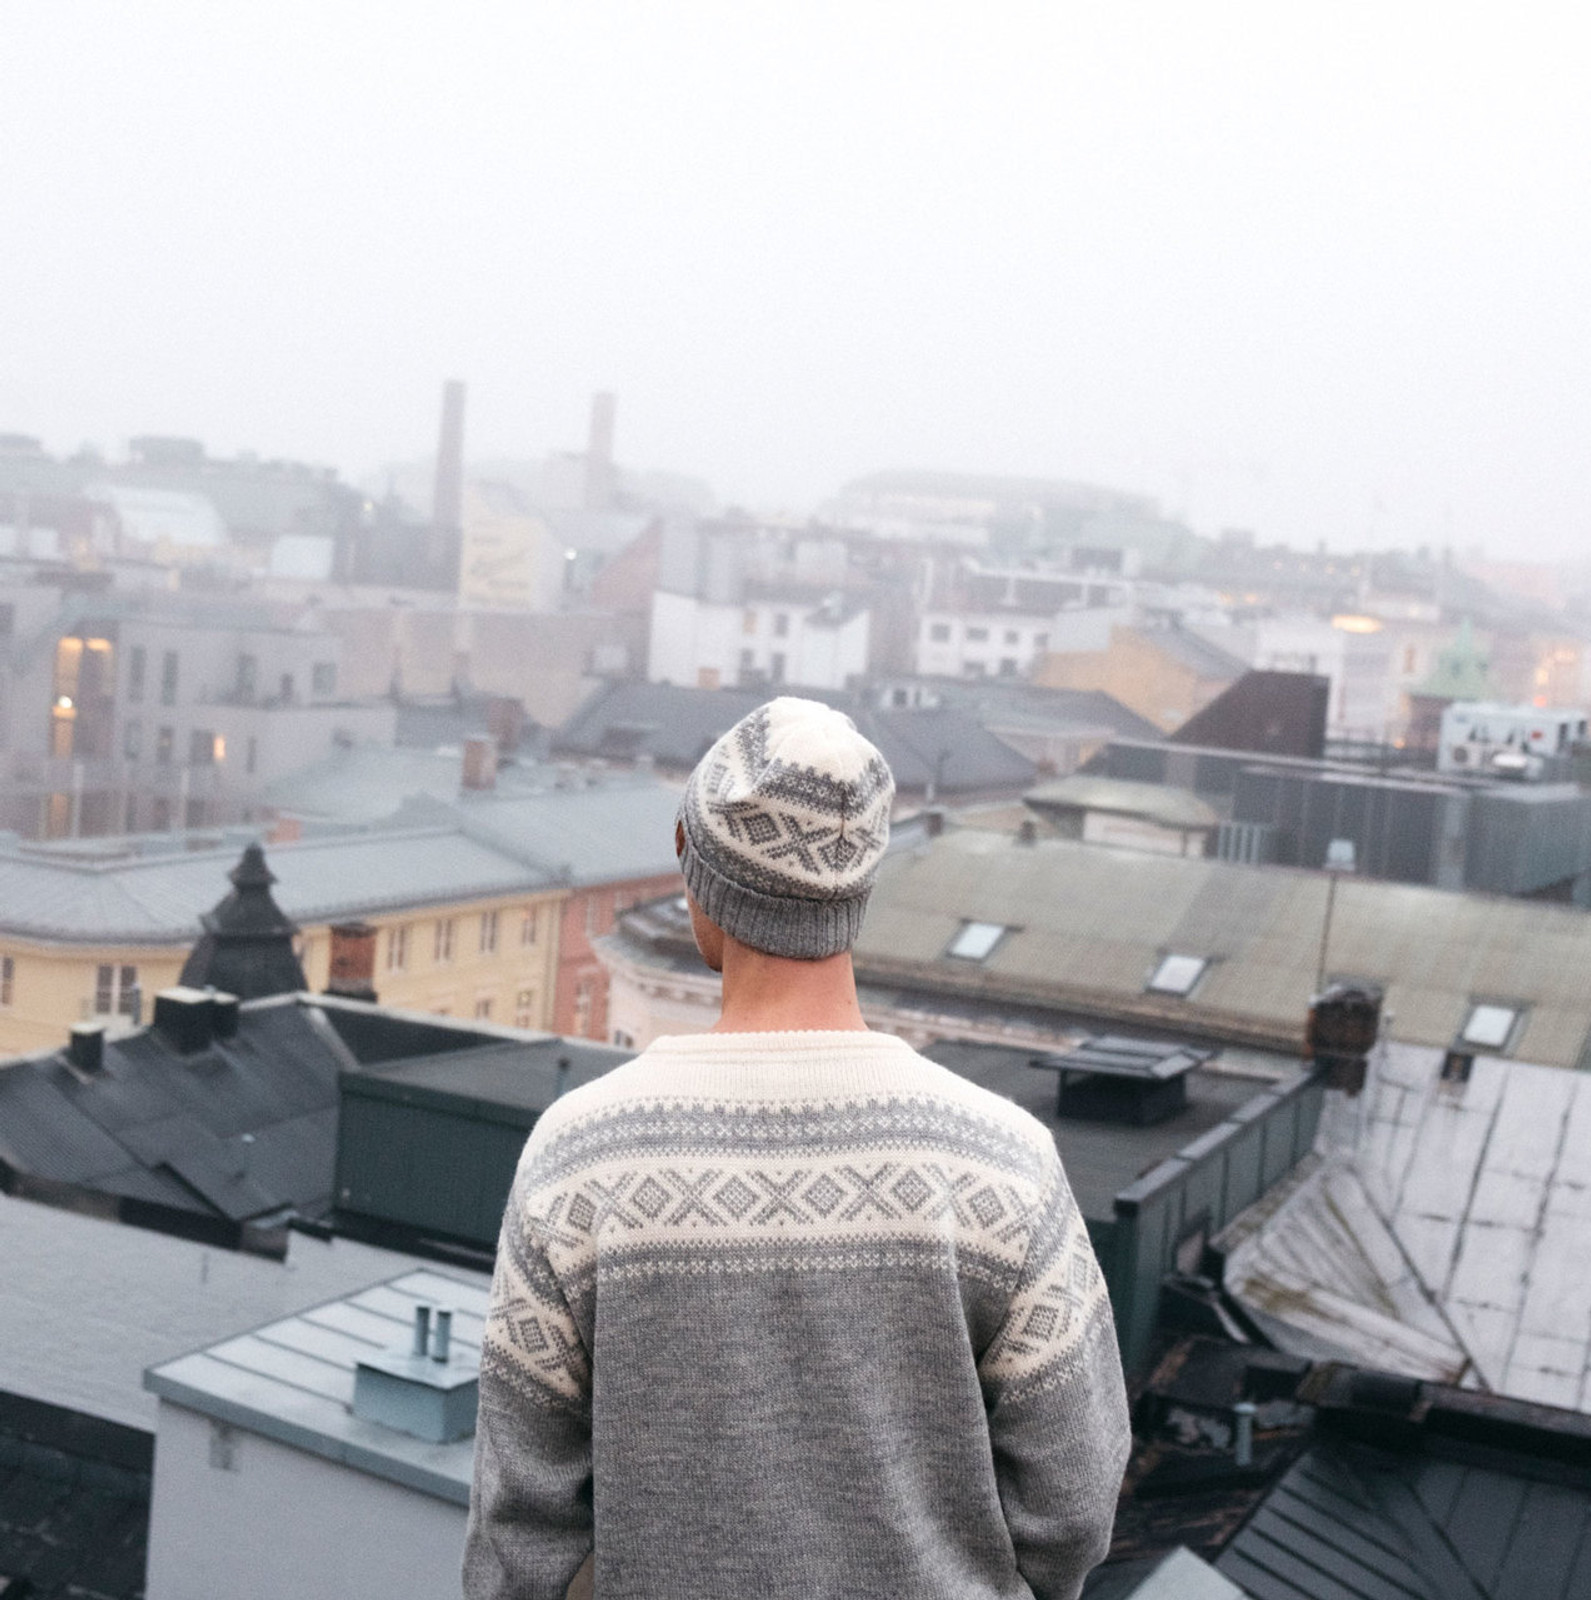 Man looking over Oslo skyline wearing Dale of Norway Cortina 1956 sweater in Light Charcoal/Off White, 92521-E, and Cortina hat in Off White/Light Charcoal, 42261-E